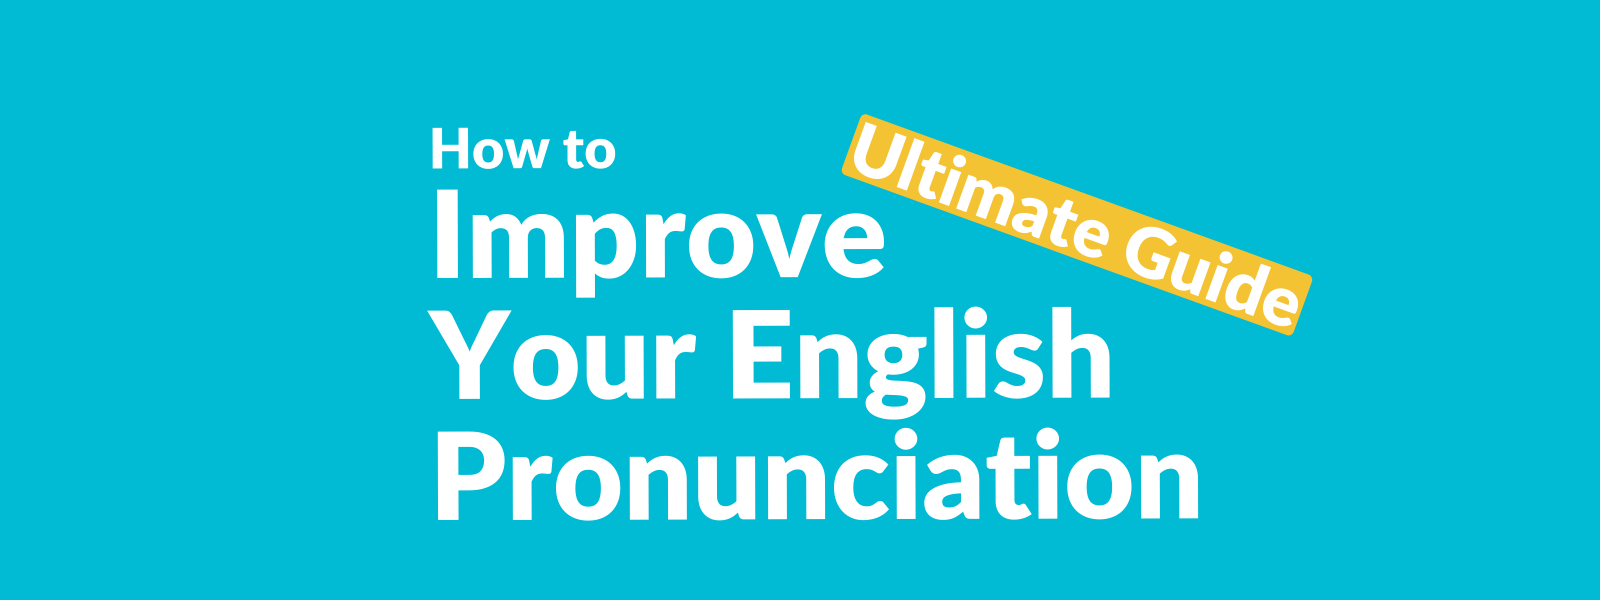 How to improve your English pronunciation Talaera Guide-1